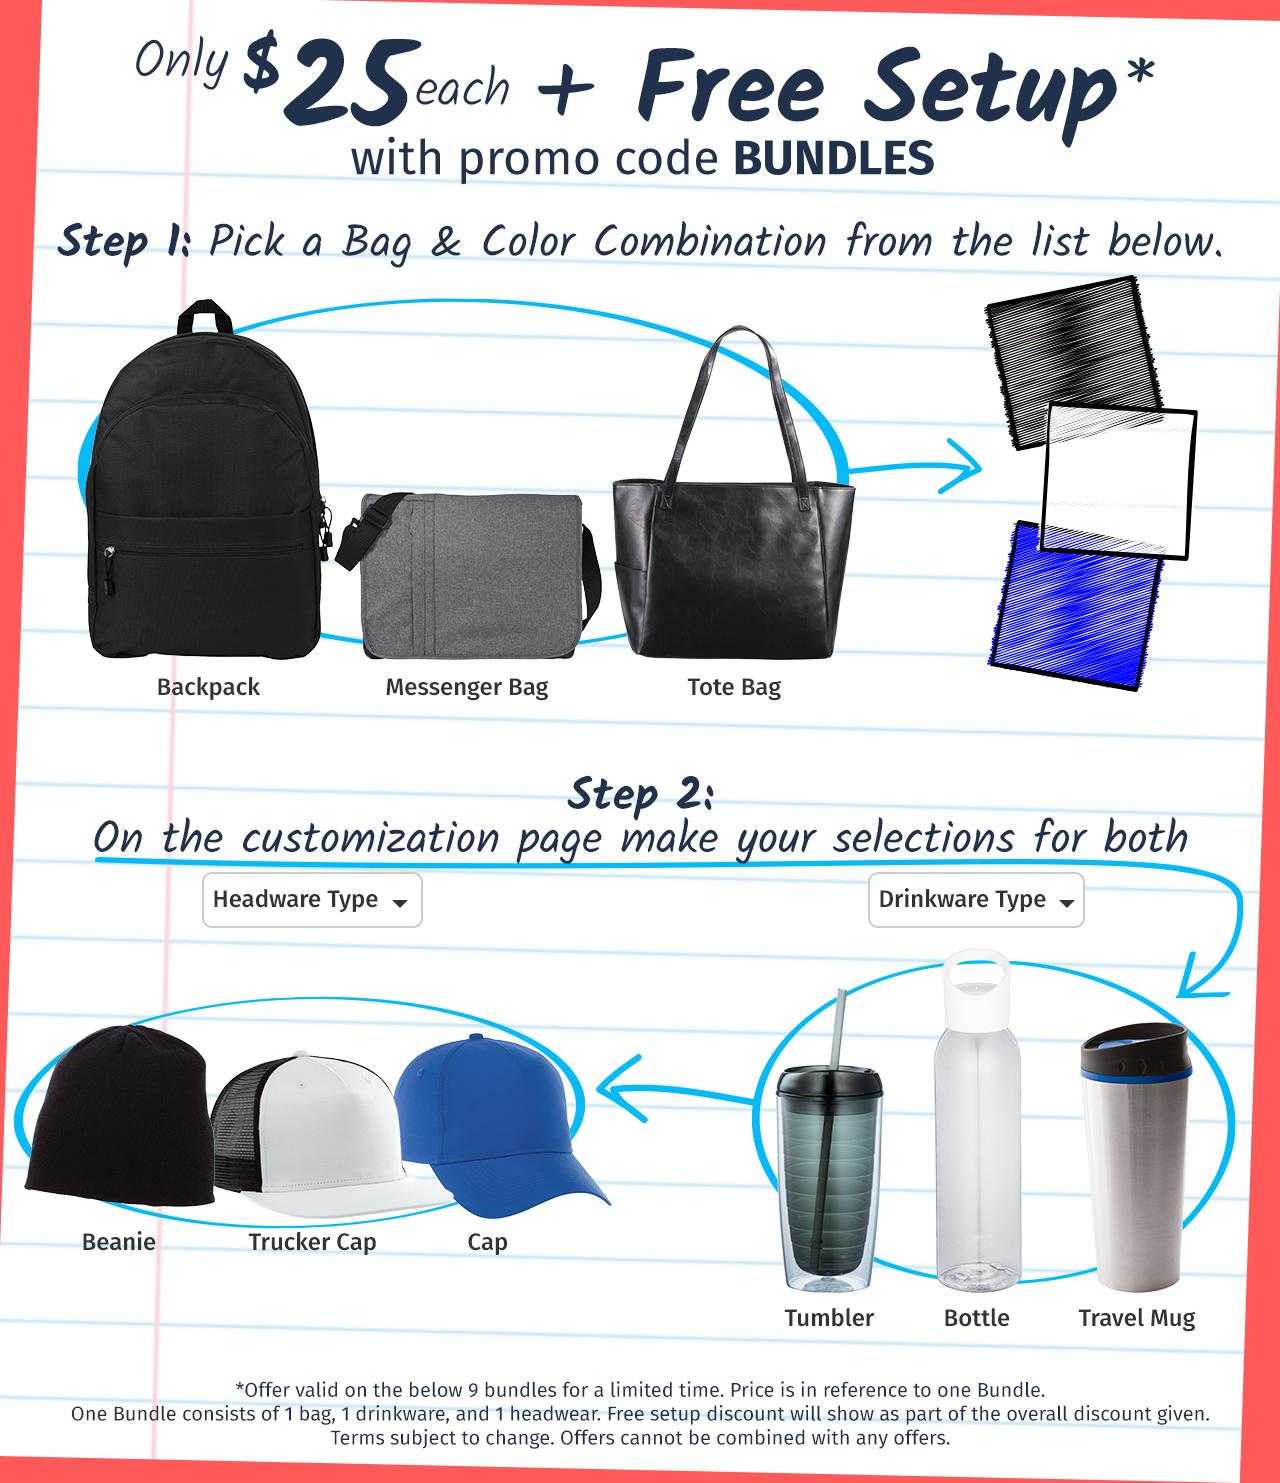 Mix and Match Your Own Bundle